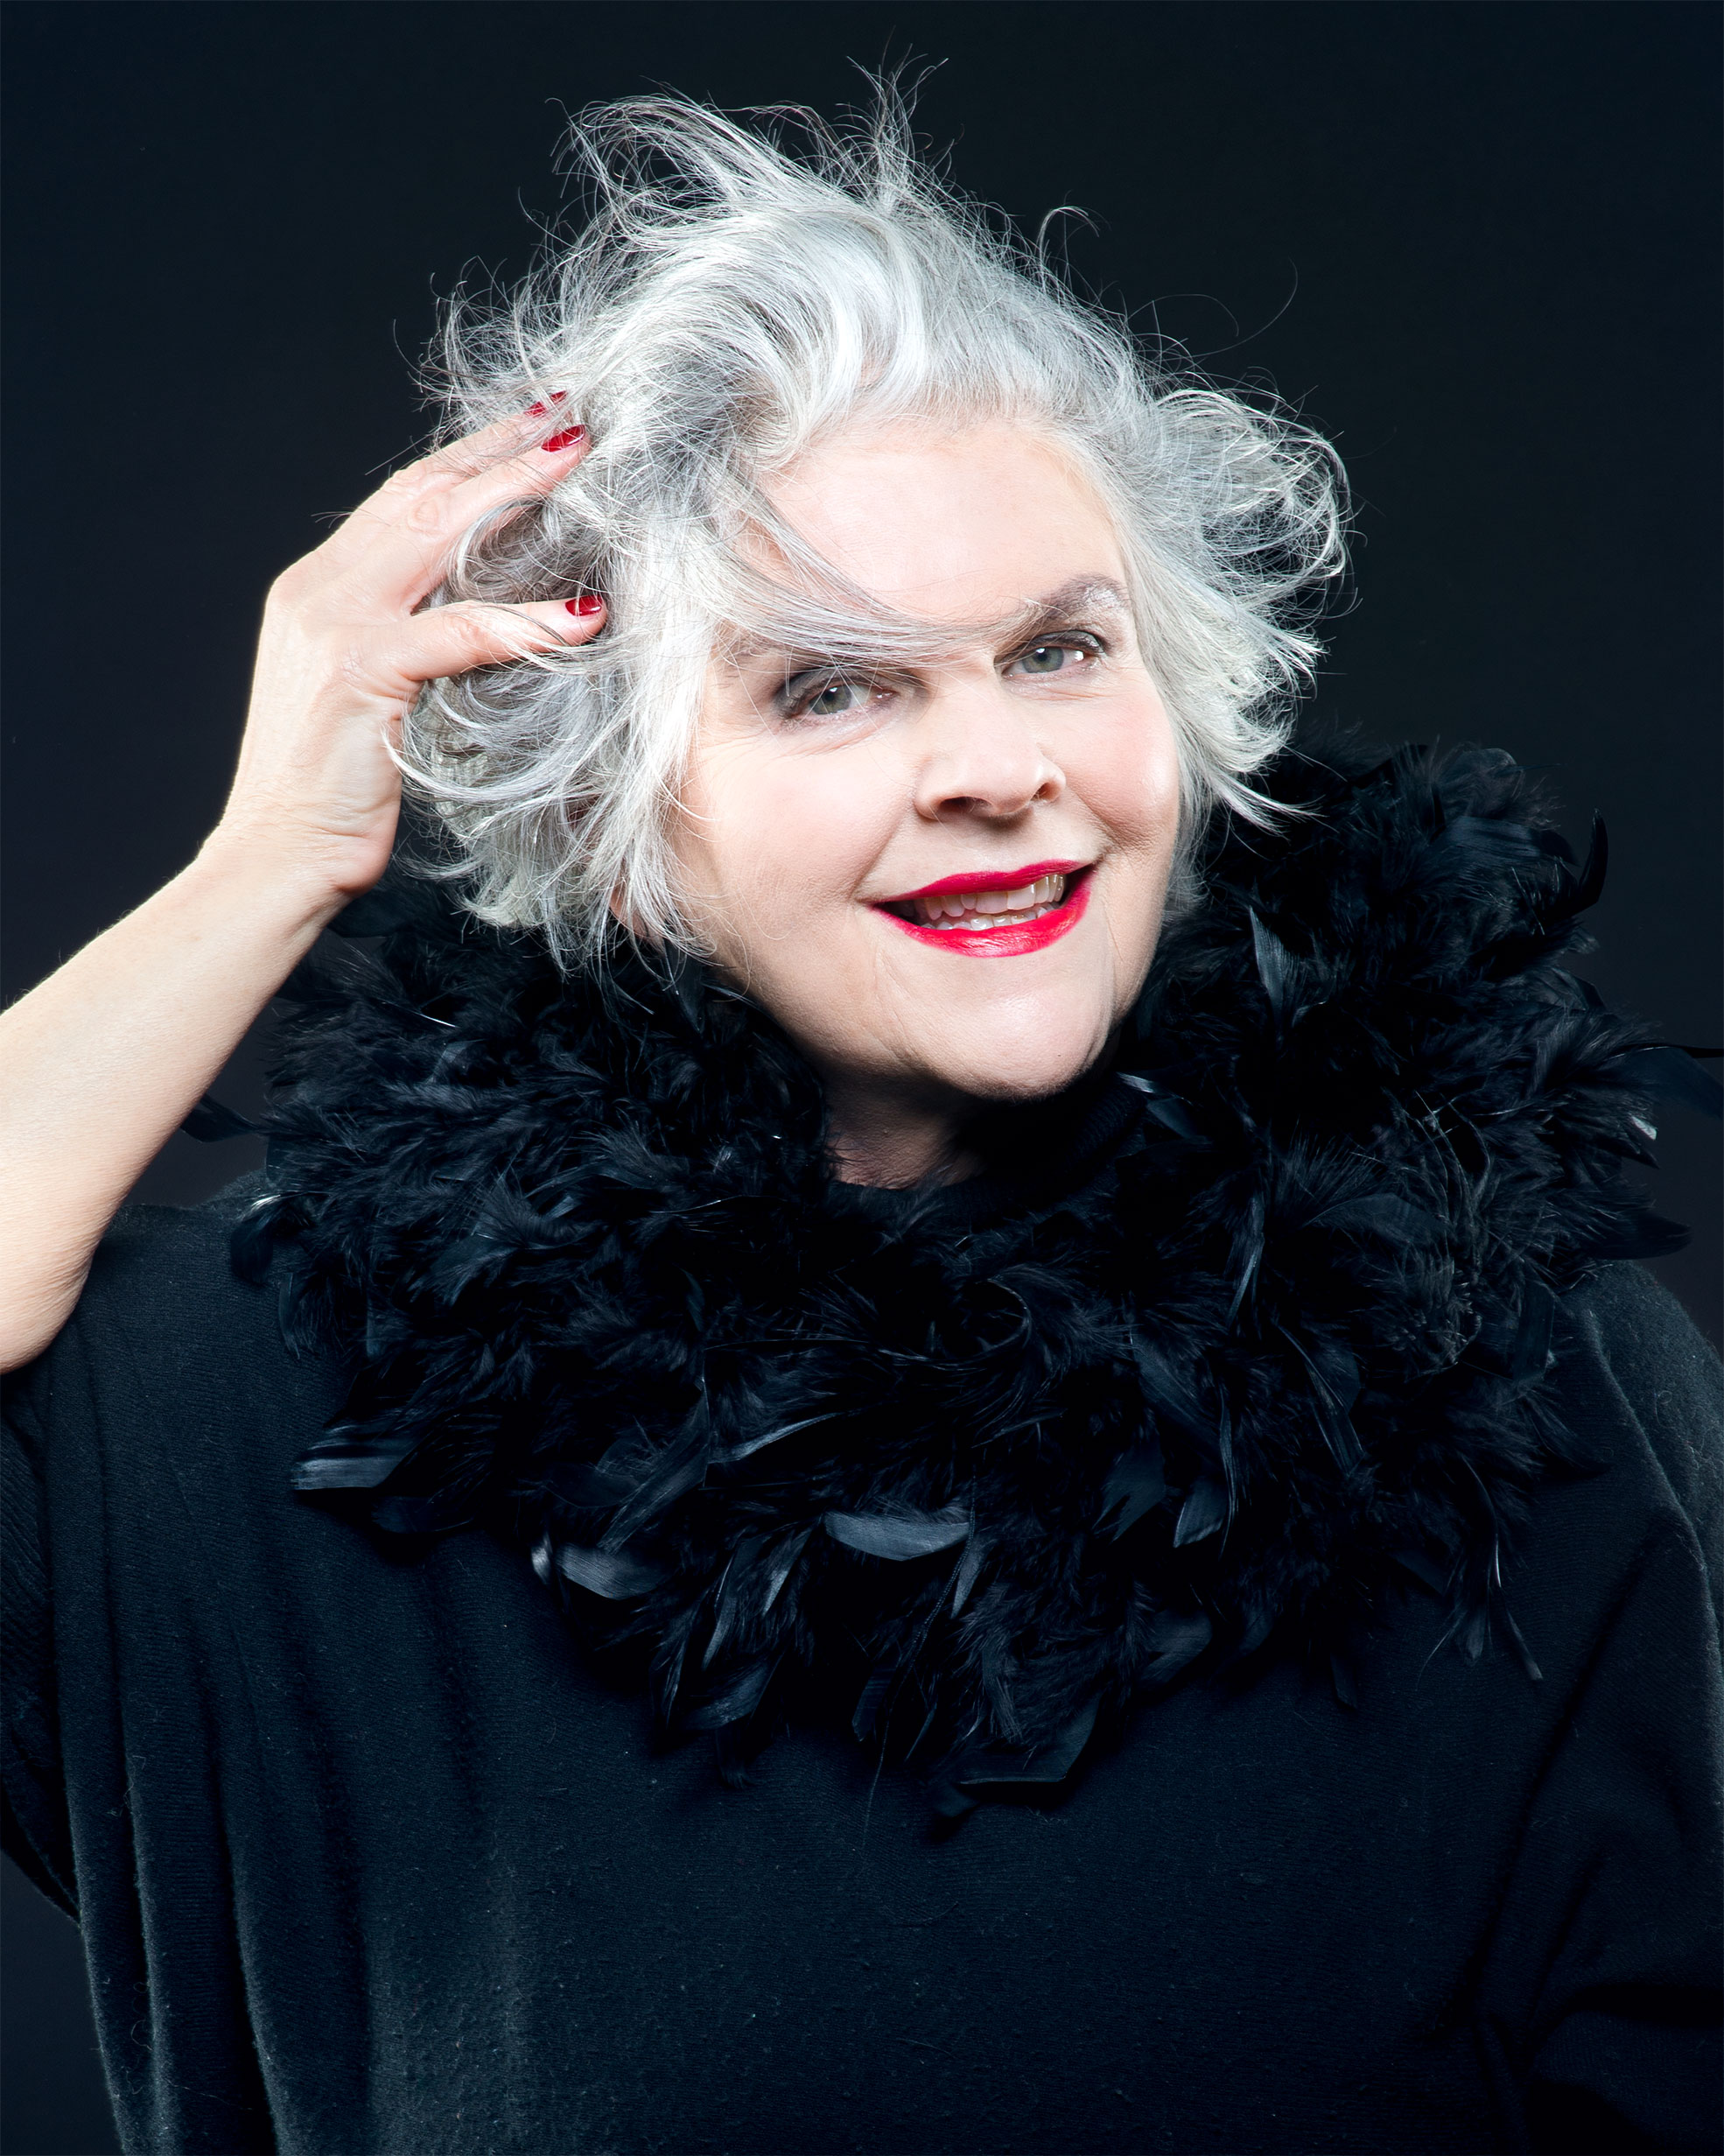 Portrait of an elderly woman with mussed white hair Make Up By Daniele Francolino Photographer Maria Teresa Furnari